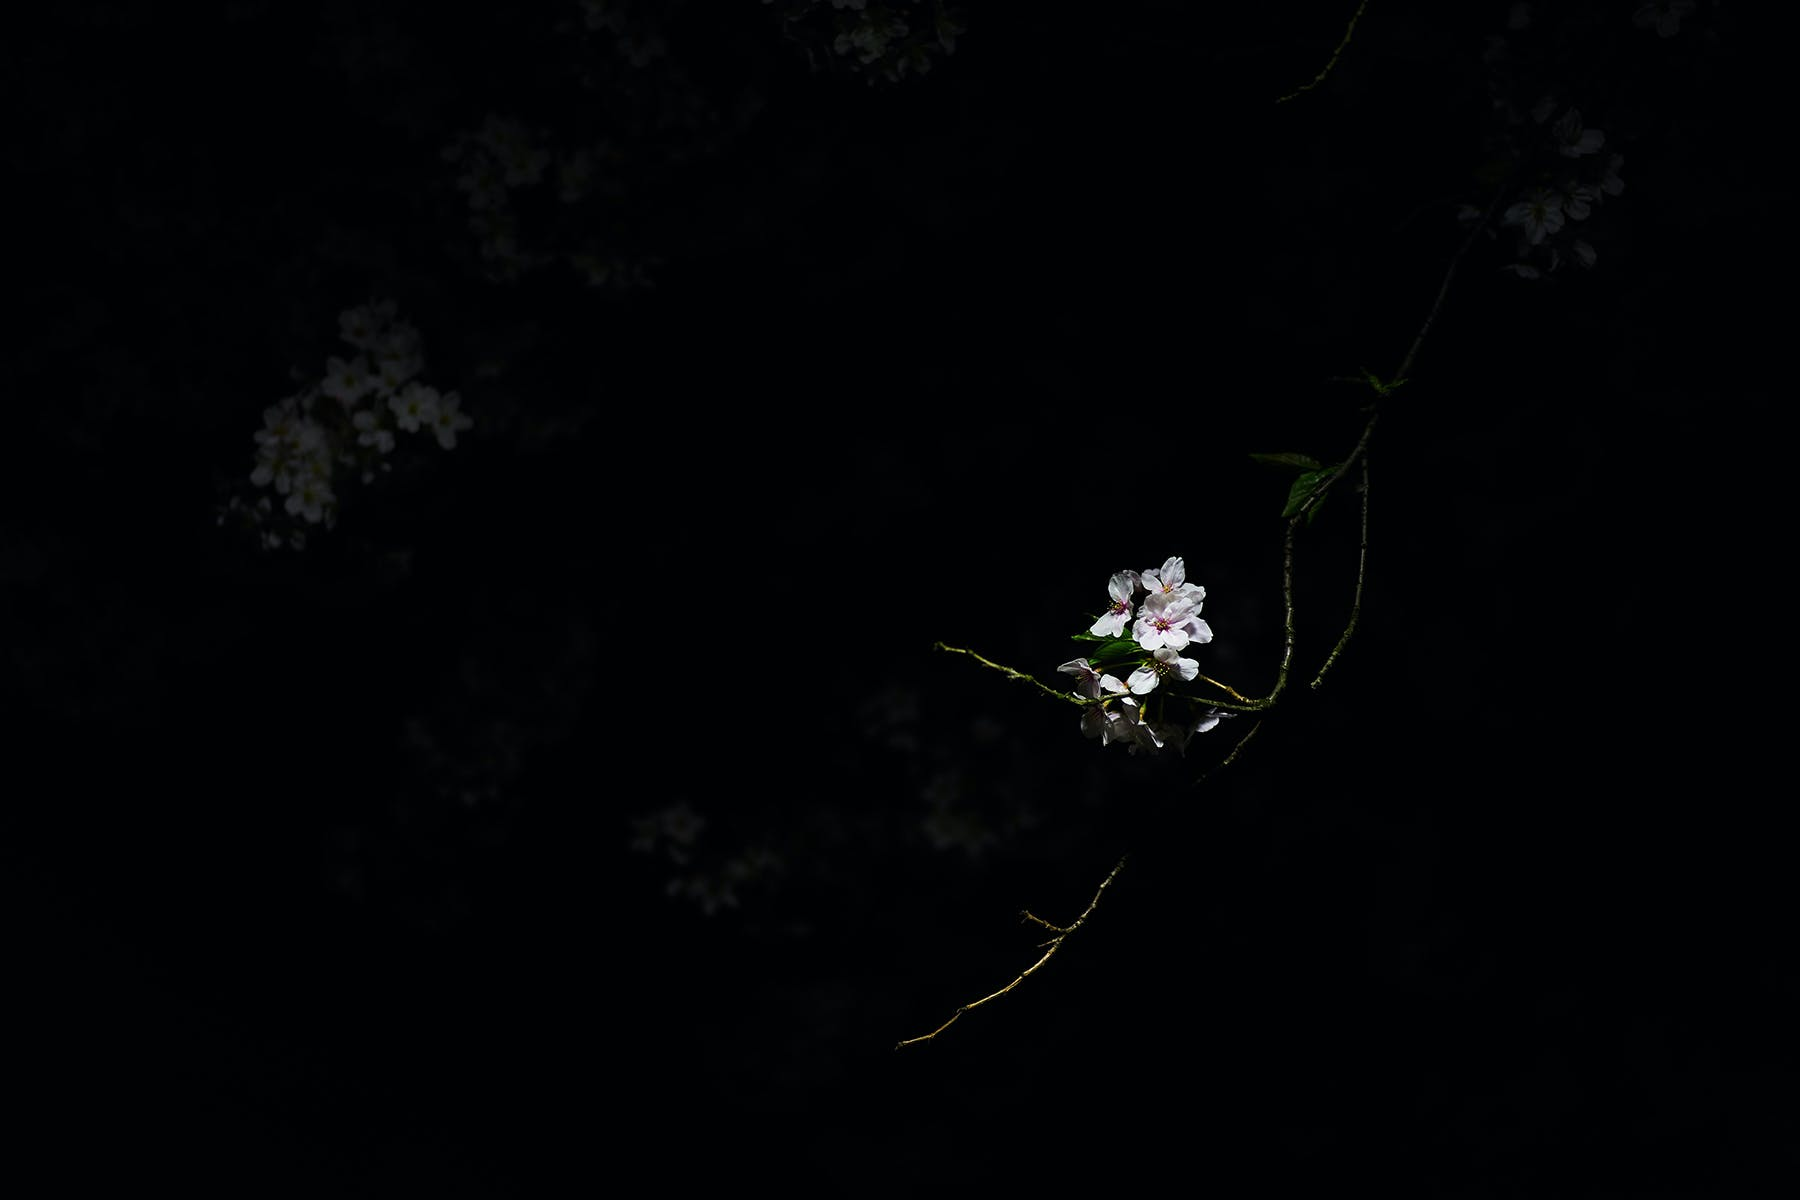 white flower against a black background